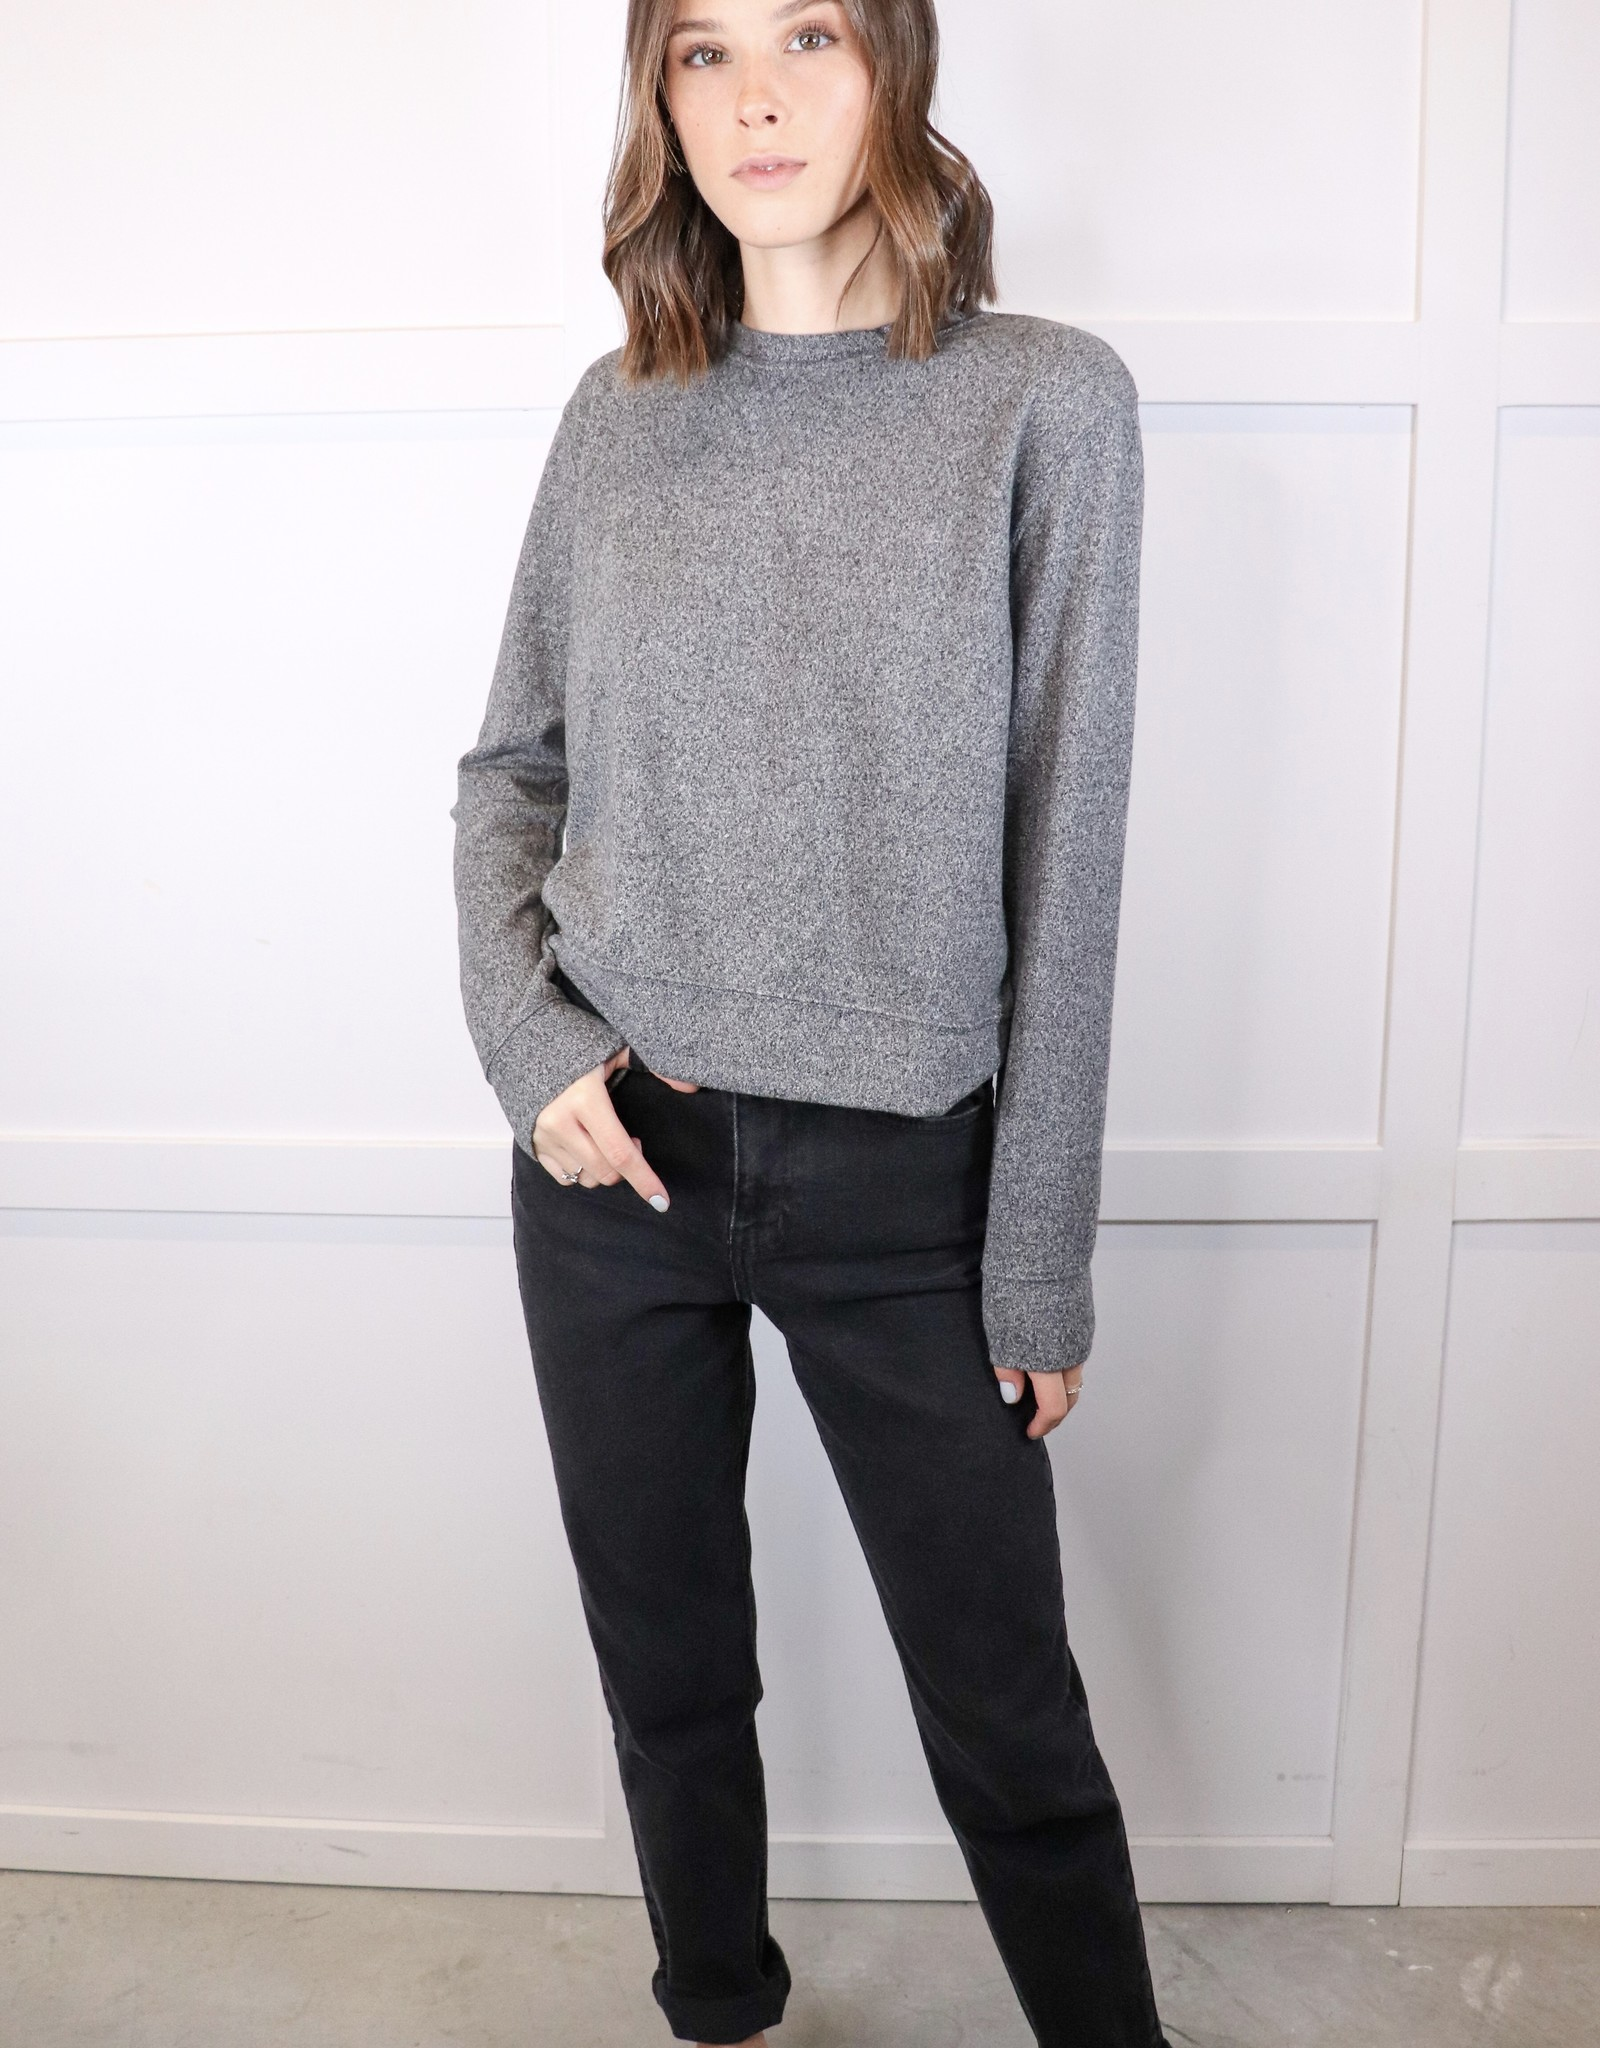 HUSH Soft crew neck long sleeve